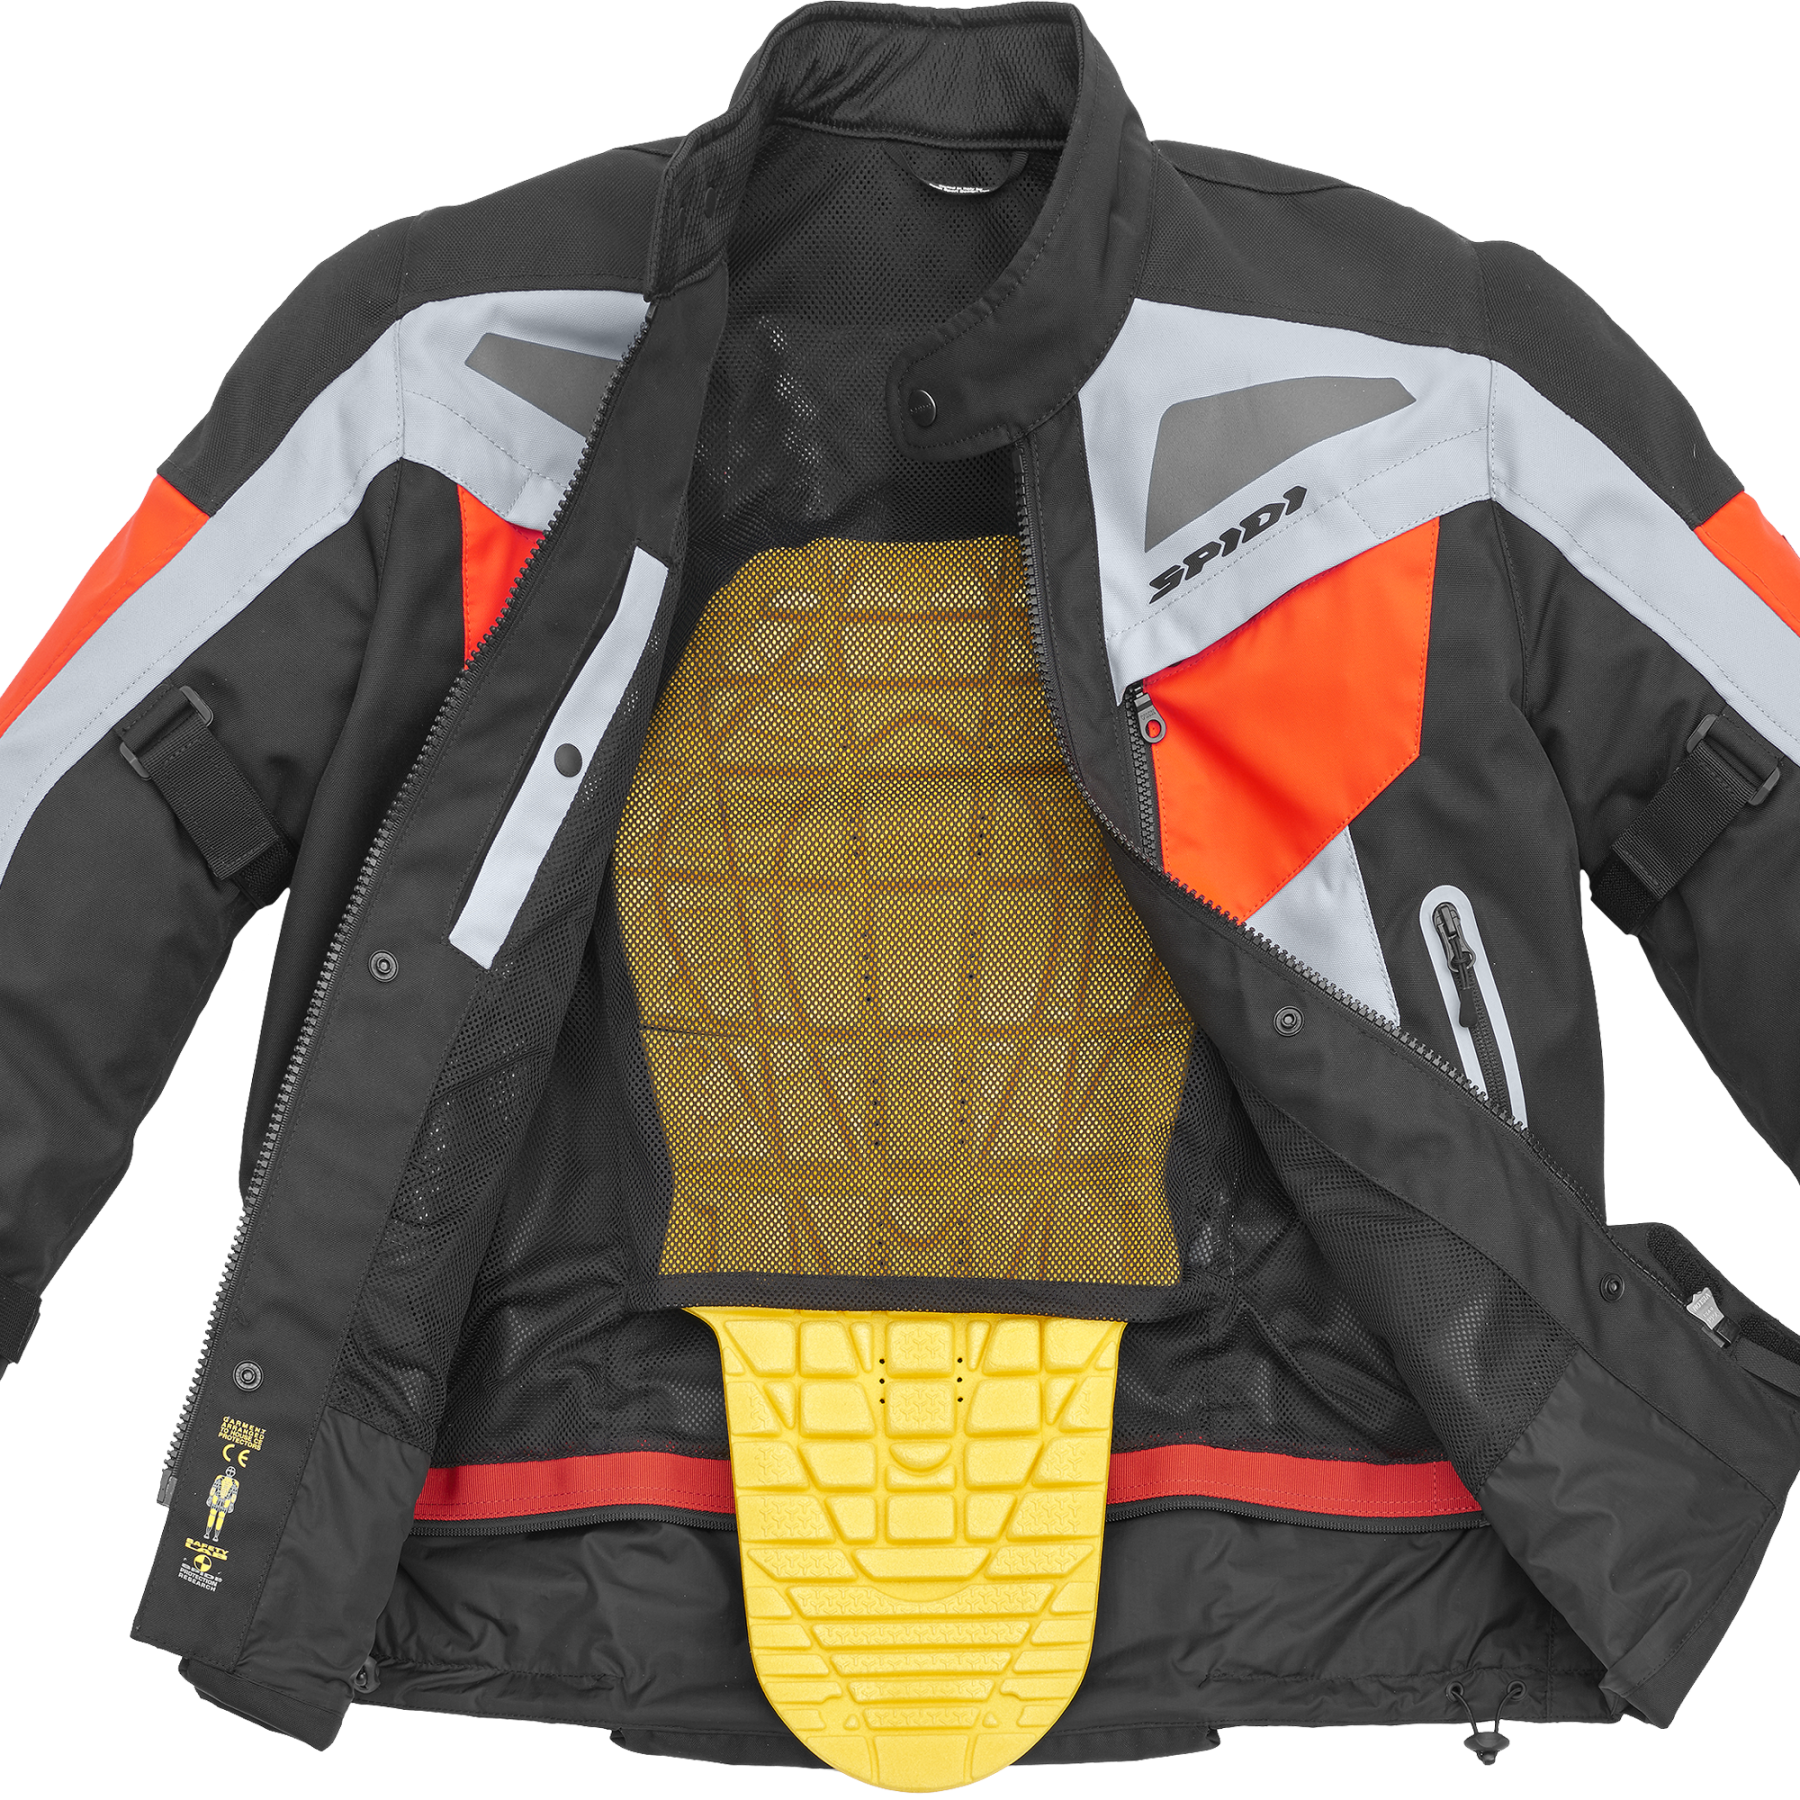 ab0e3fa2 Voyager Evo H2Out Jacket